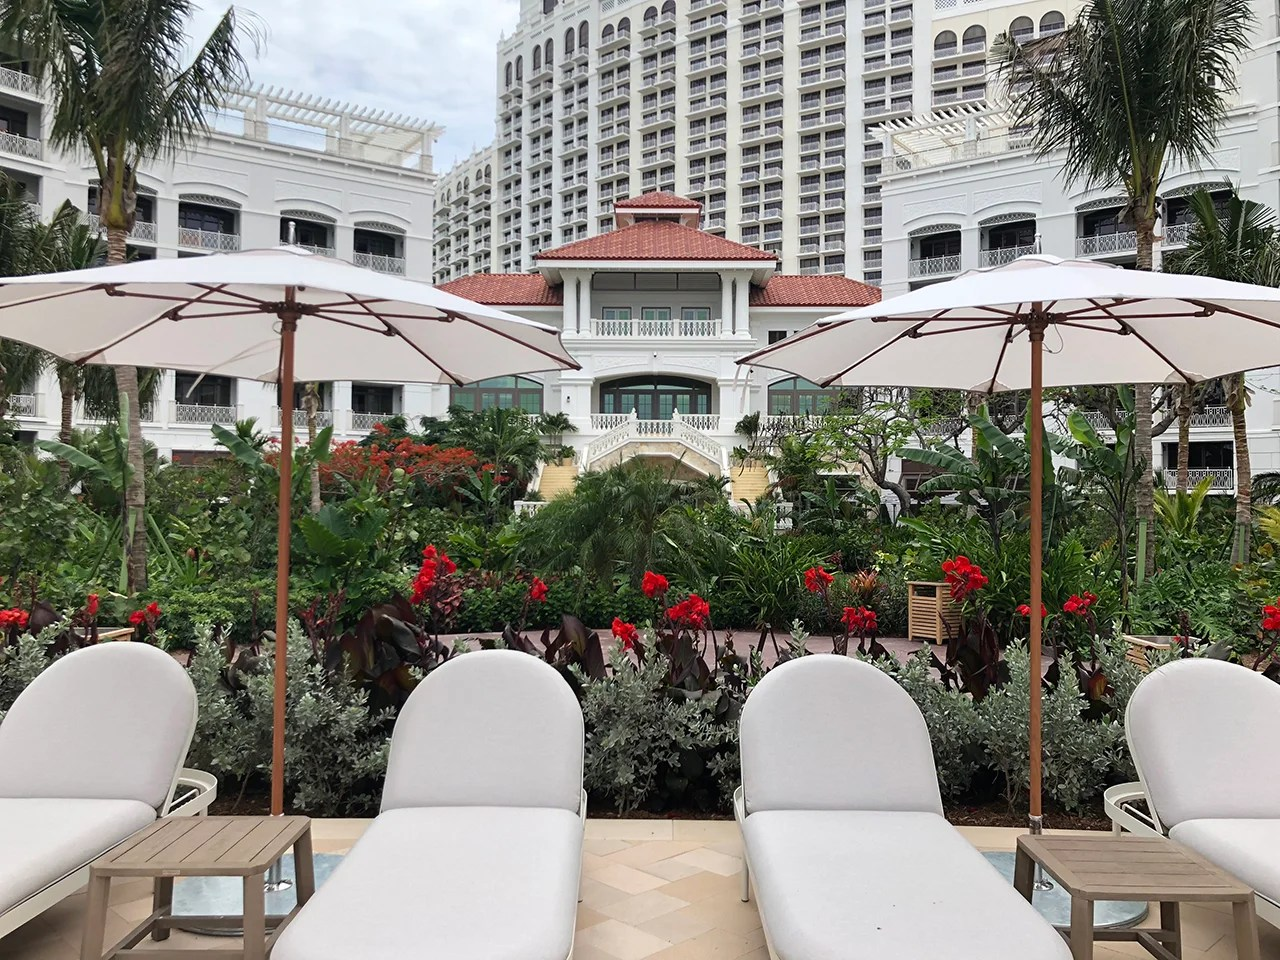 Rosewood Baha Mar A Review Of Baha Mar S Luxury Resort